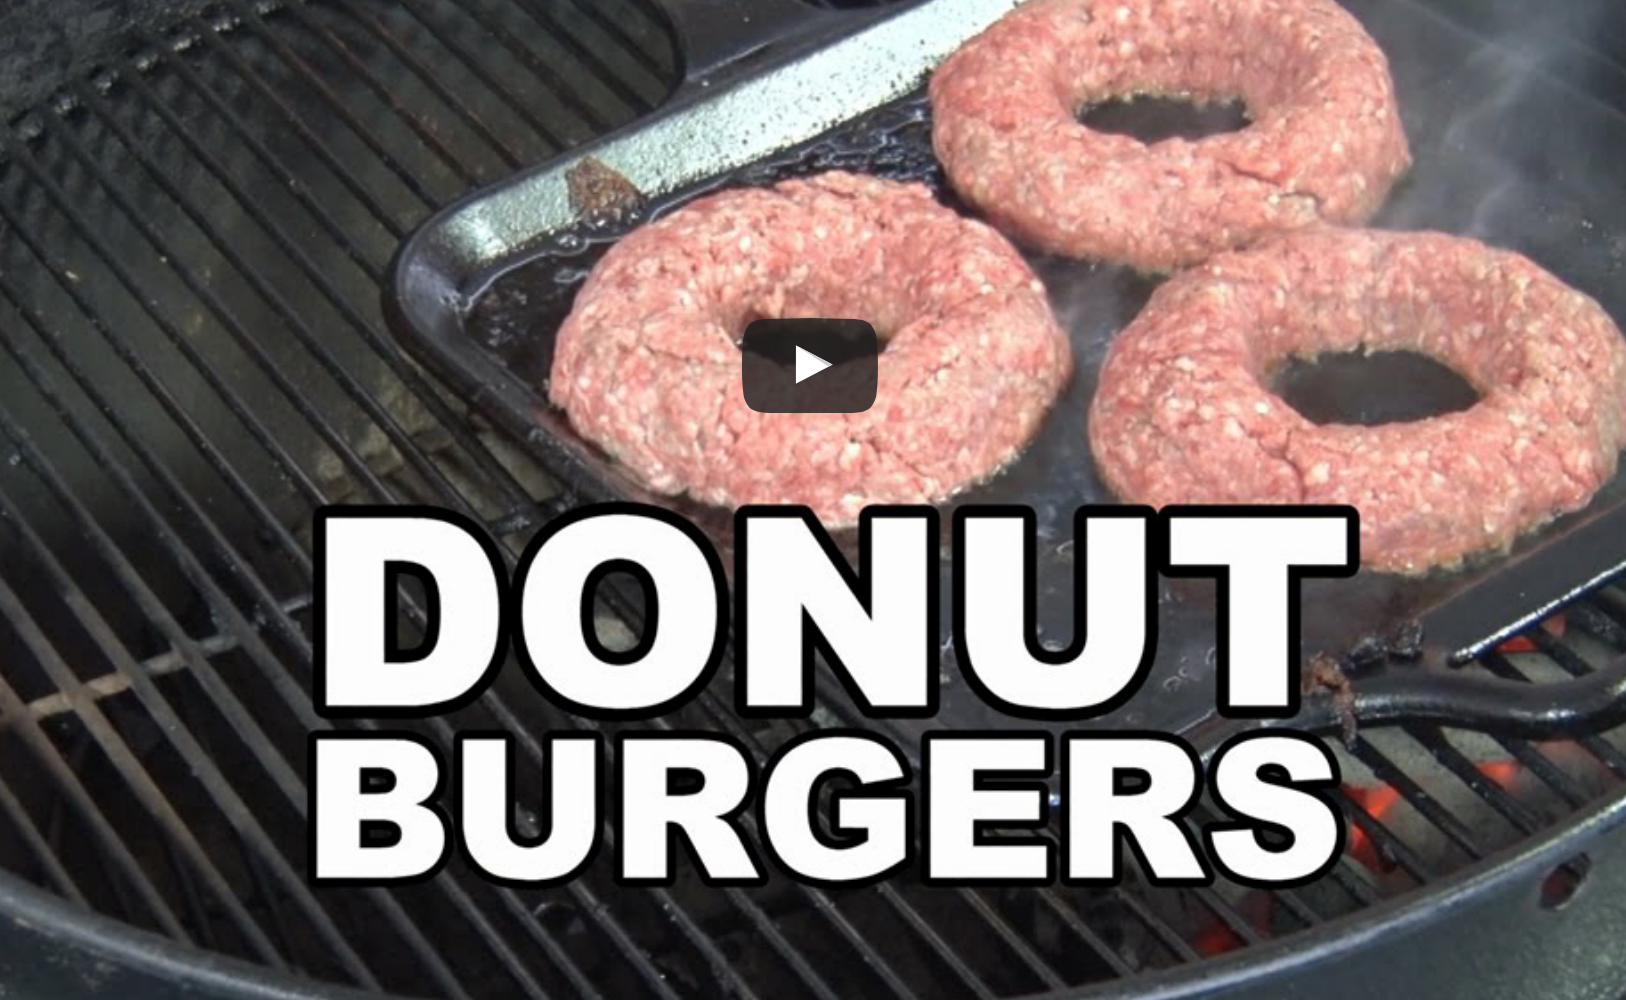 [DELICIOUS VIDEO] Stuffed Donut Burgers On The BBQ PIT!